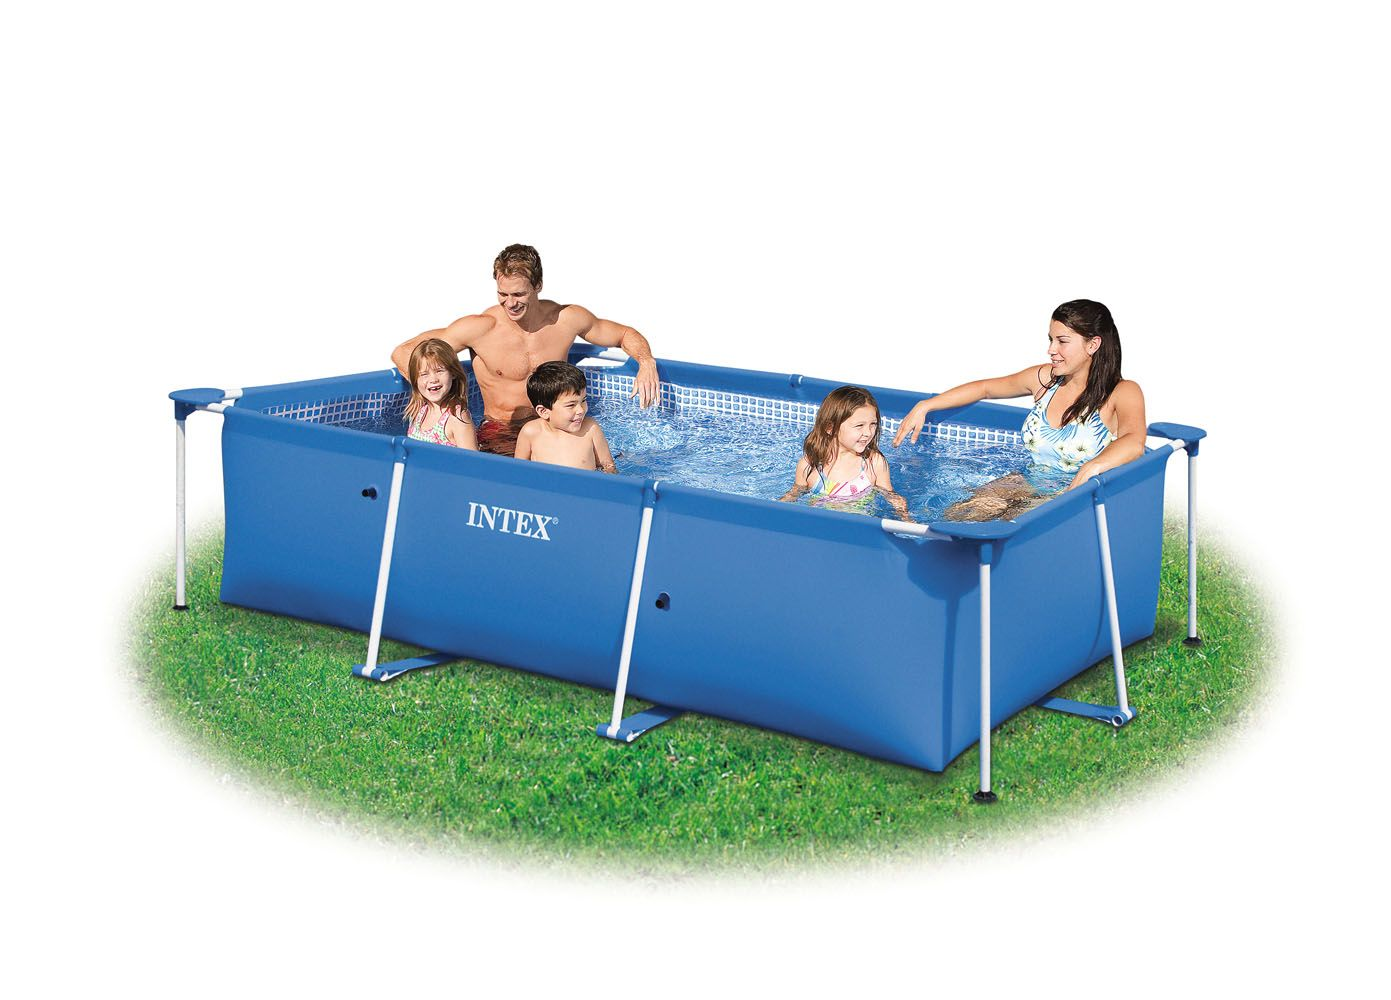 Piscine rectangulaire hors sol intex intex for Piscine hors sol intex